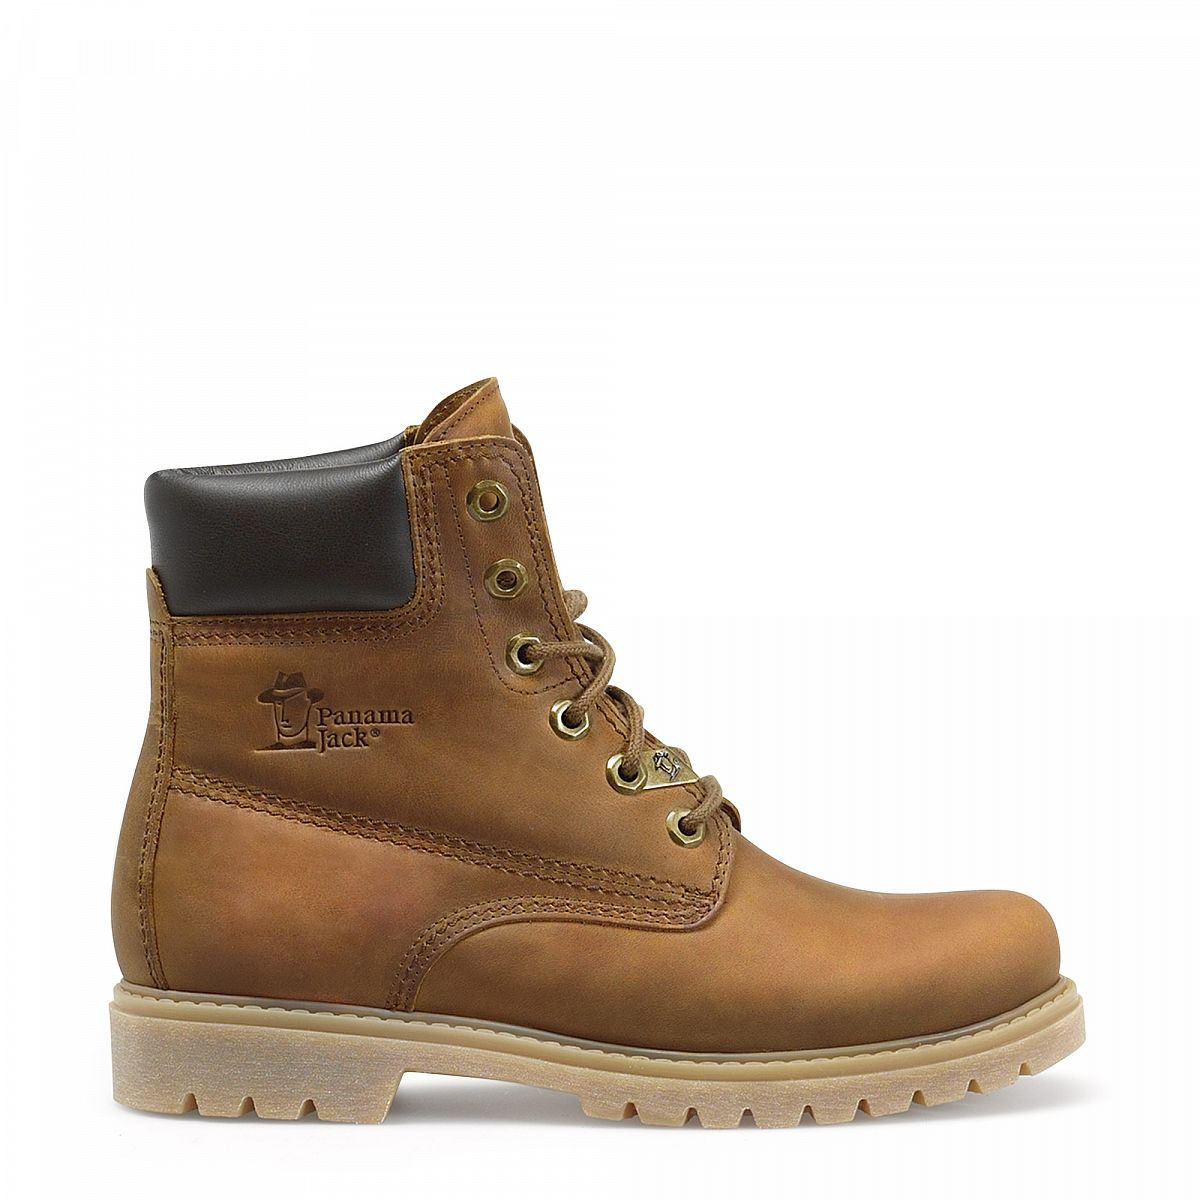 Awesome Panama Jack Official Shop Of Boots Shoes And Accessories